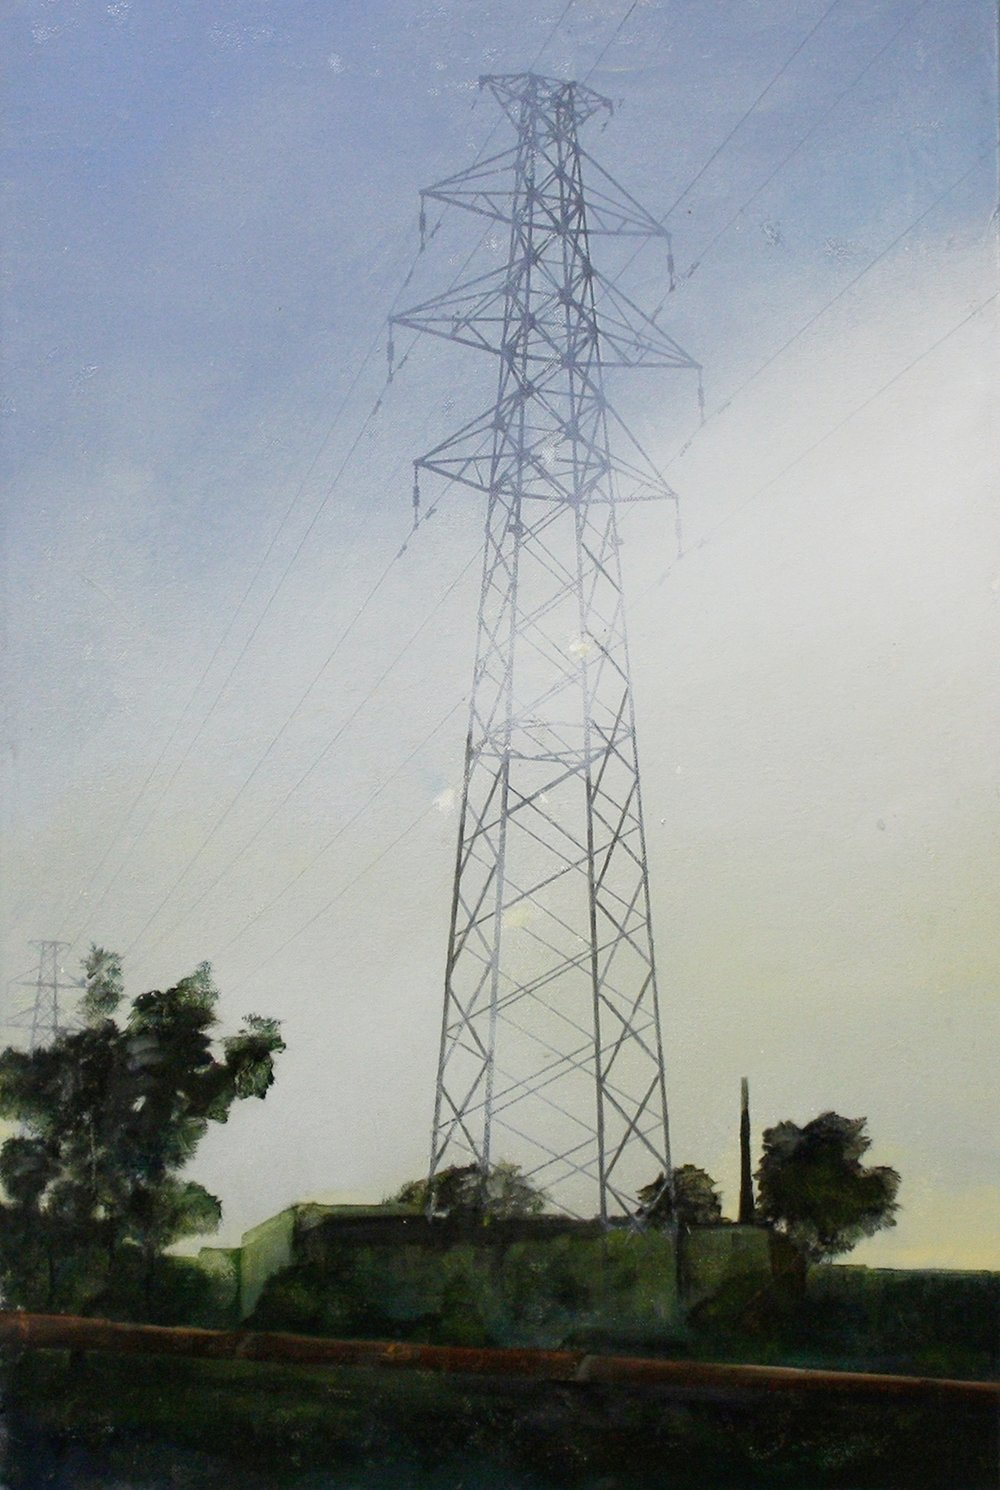 Edgeland 1   2012, oil on linen  50 x 76 cm